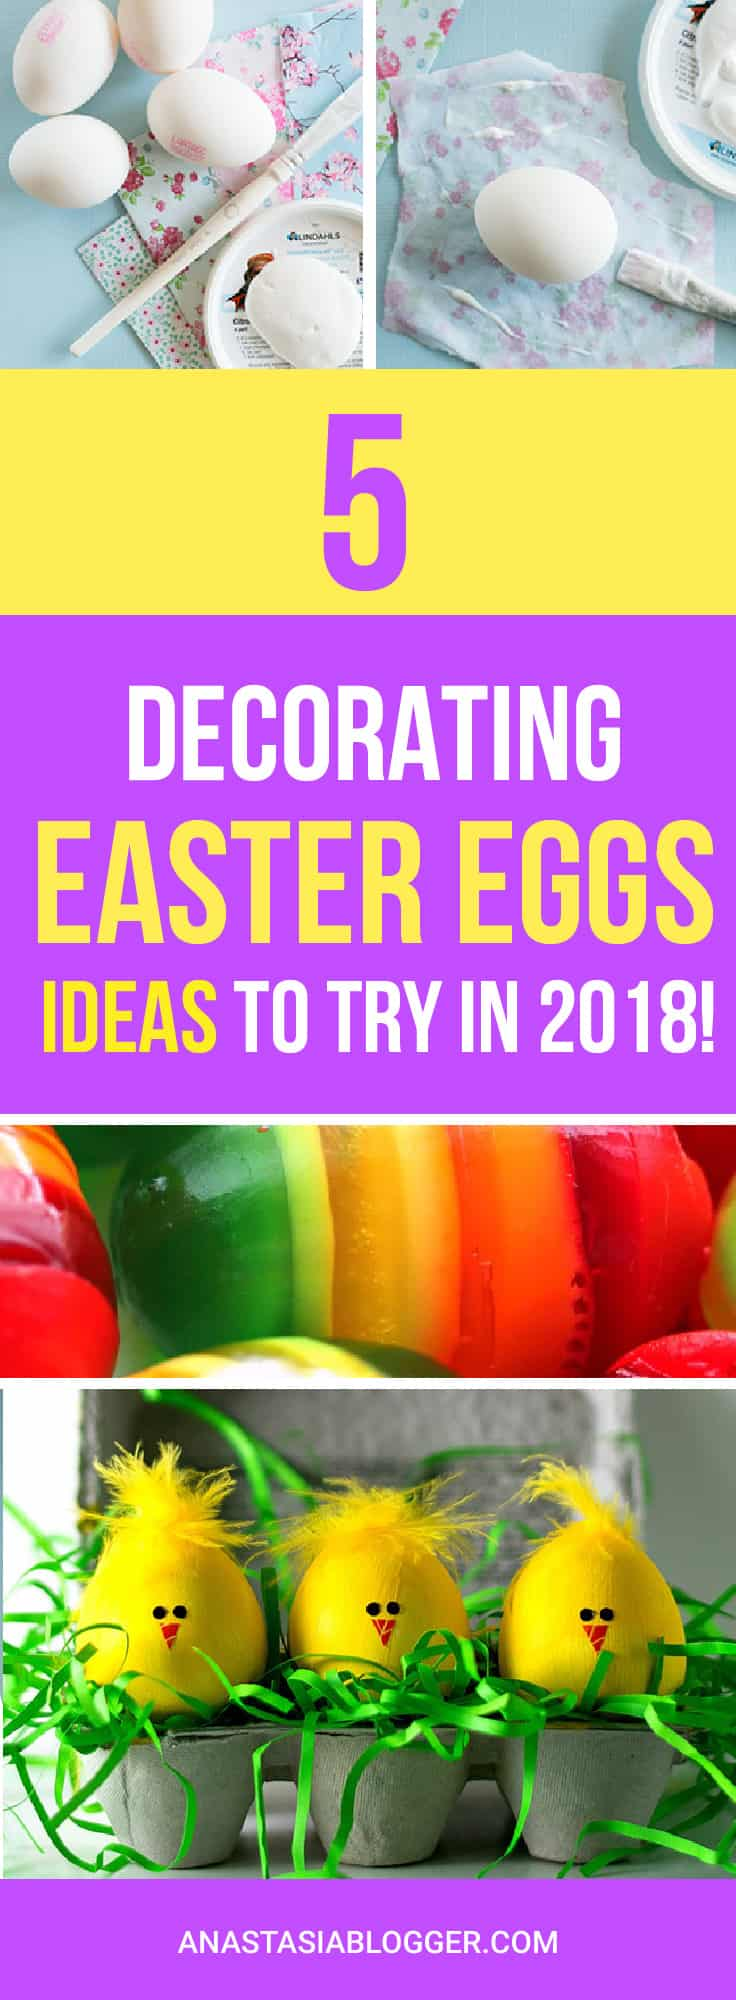 Check out my TOP 5 Easter Decorations Ideas for Eggs to Try this year! Coloring Easter Eggs can be an adventure for all the family! Best Easter Decorations DIY for Kids.  #easter #diy